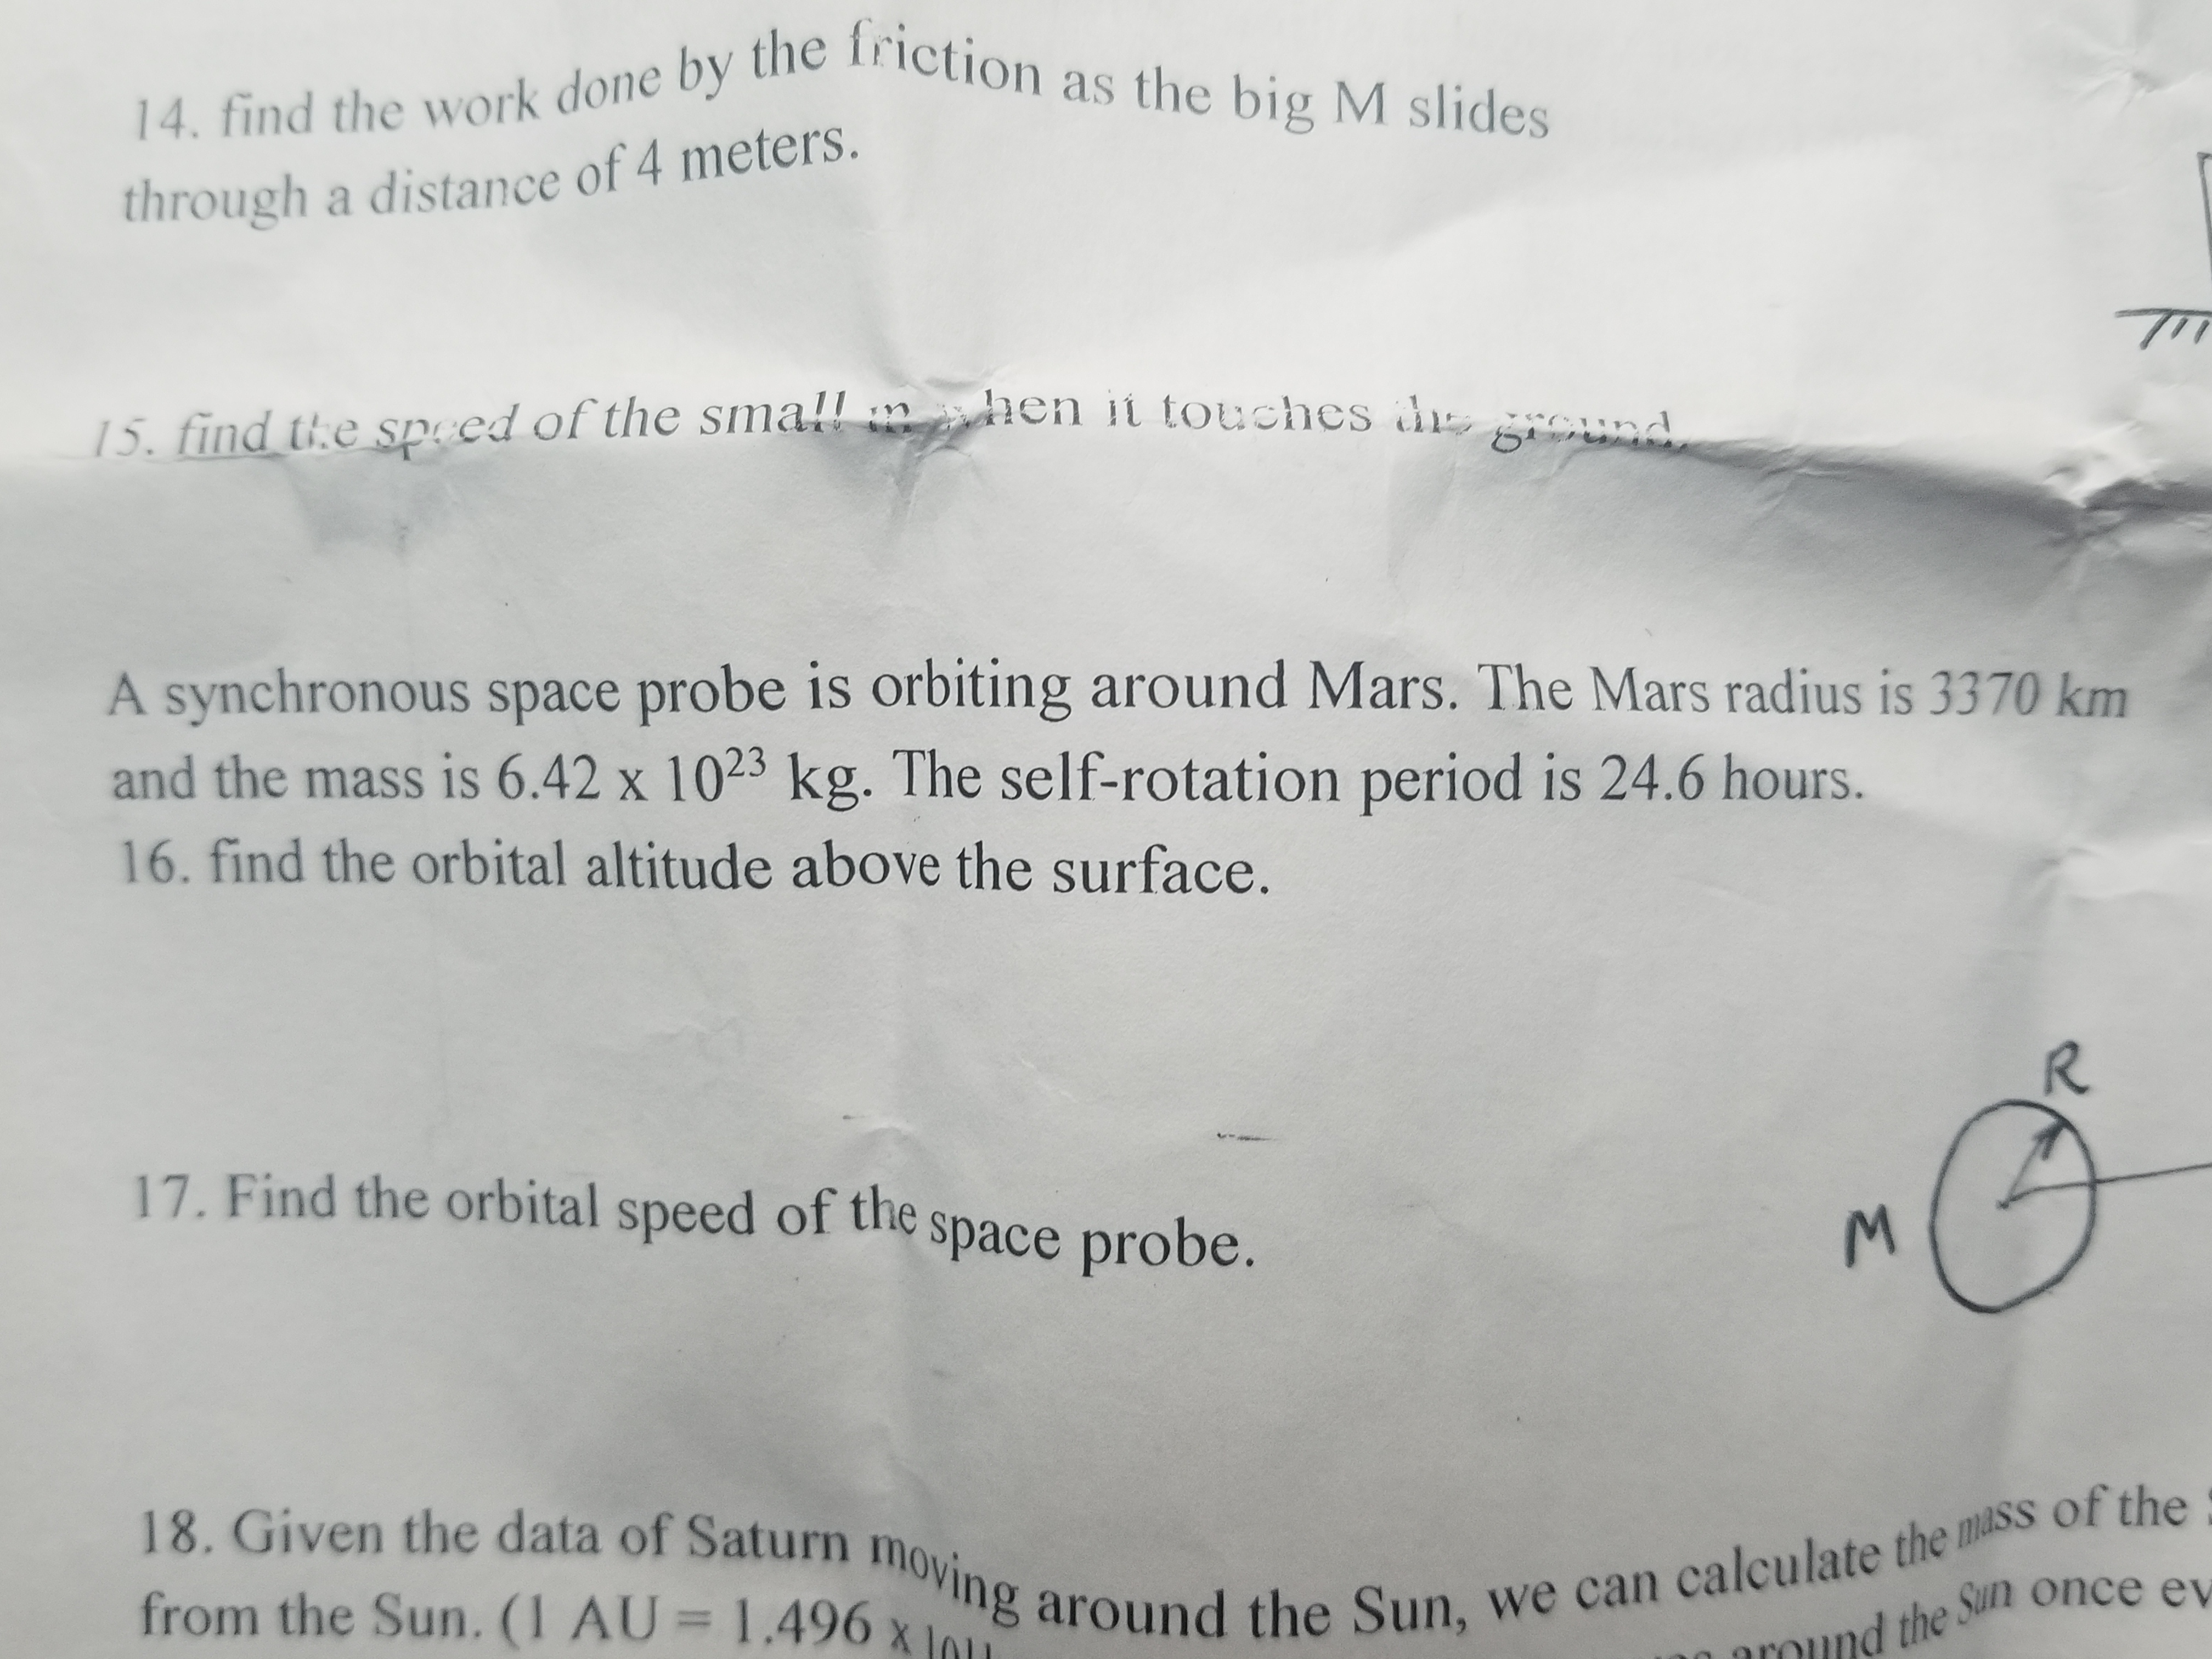 14. find the work done by the friction as the big M slides through a distance of 4 meters 15. find the speed of the small hen it touches d gOund A synchronous space probe is orbiting around Mars. The Mars radius is 3370 km and the mass is 6.42 x 1023 kg. The self-rotation period is 24.6 hours. 16. find the orbital altitude above the surface. R 17. Find the orbital speed of the space probe. of the 18. Given the data of Saturn moving around the Sun, we can calculate the mass from the Sun. (1 AU = 1.496 x the Sun once ev